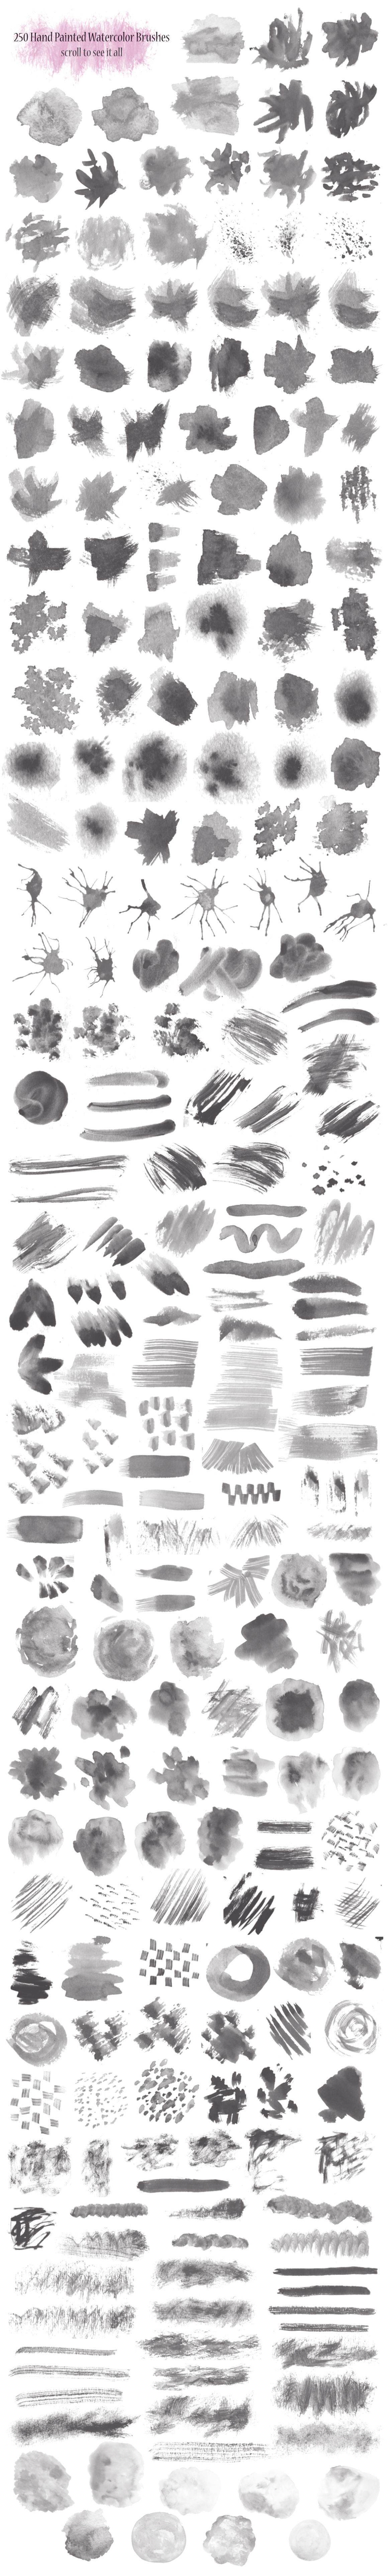 PS Watercolor Brush Kit 250 brushes example image 2